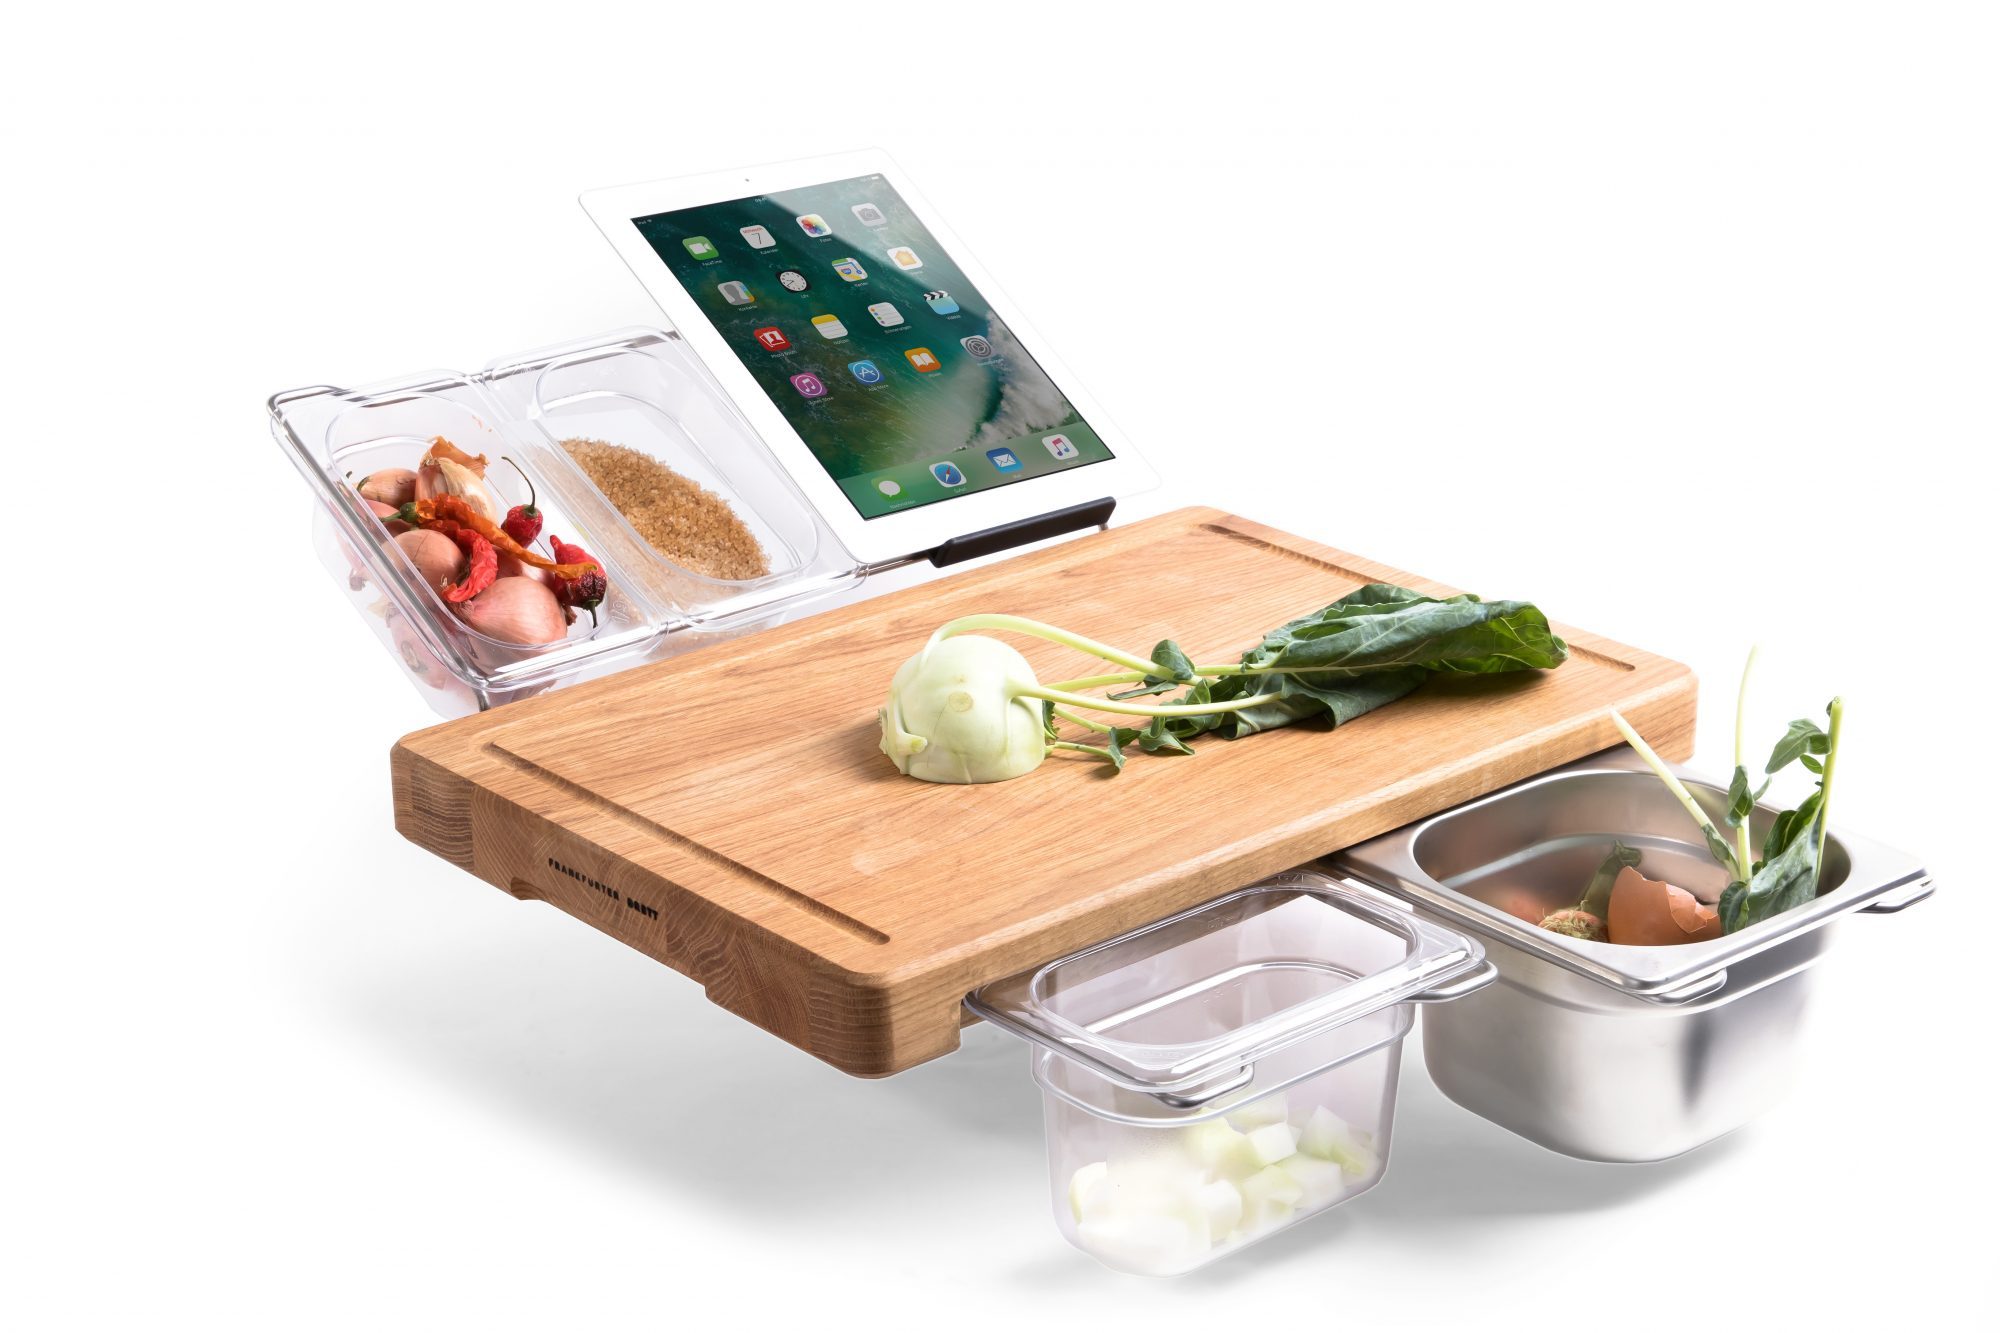 The Cutting Board of the Future Does Pretty Much Everything